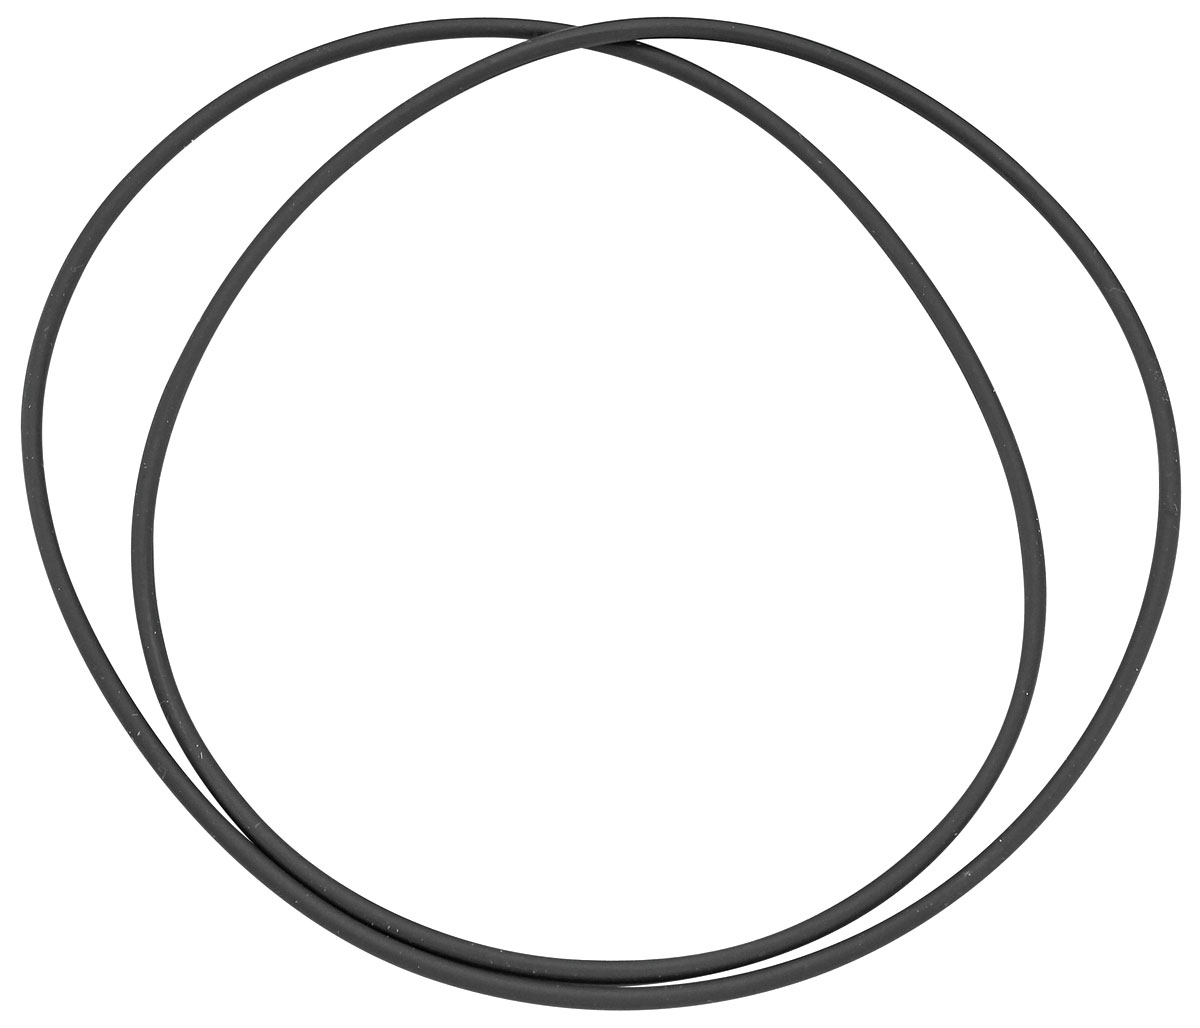 Gm Differential Bearings Amp Seals Differential Cover Gasket